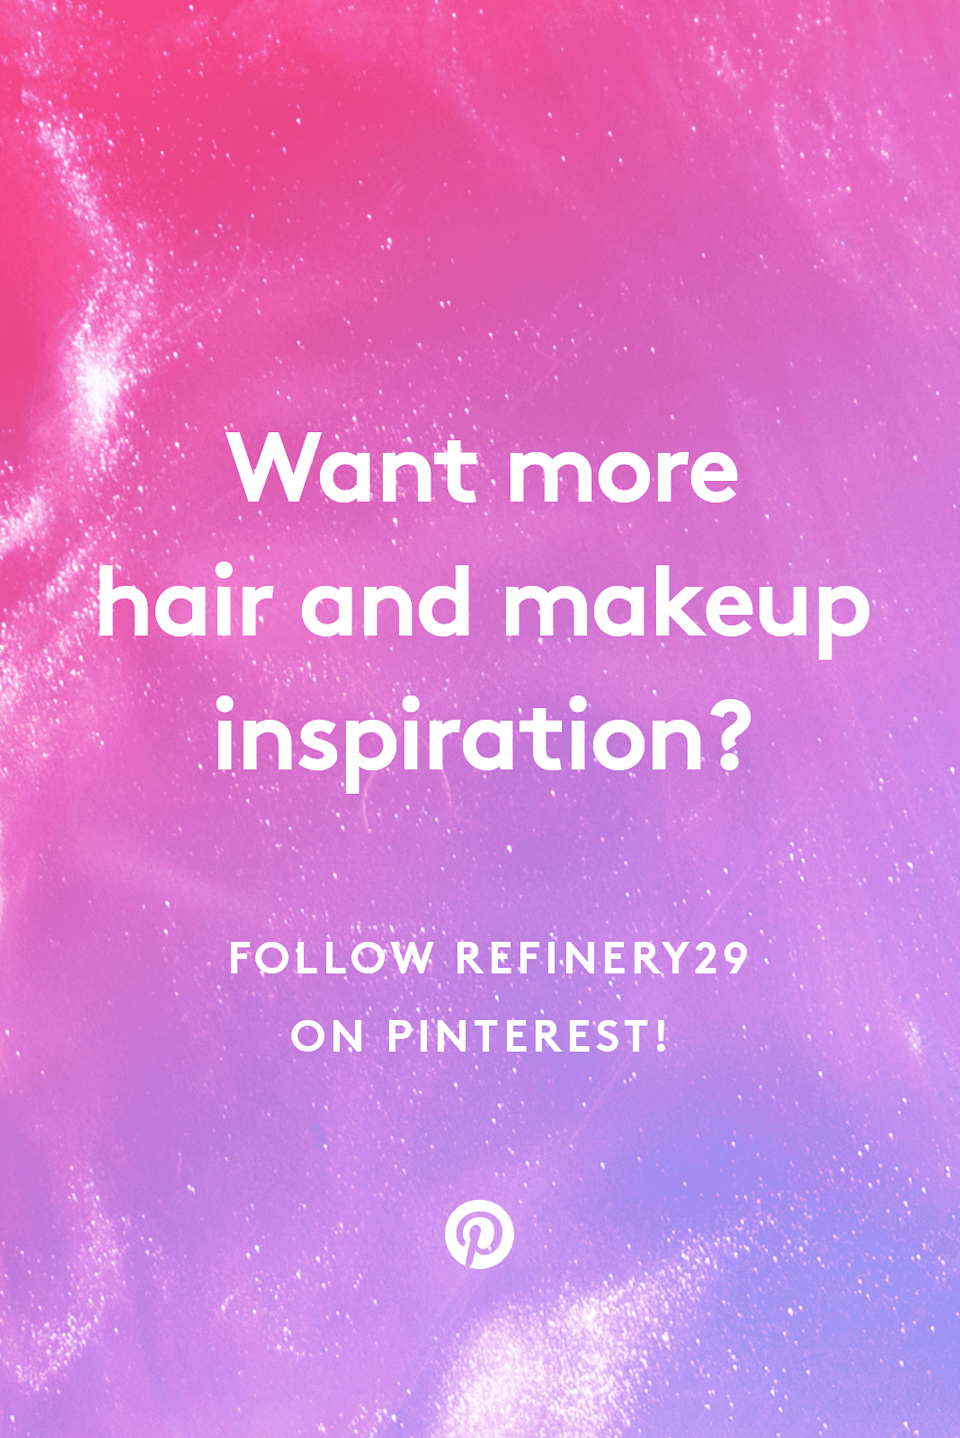 """Like this post? There's more. Get tons of beauty tips, tutorials, and inspiration on the <a href=""""https://www.pinterest.com/refinery29/?auto_follow=true"""" rel=""""nofollow noopener"""" target=""""_blank"""" data-ylk=""""slk:Refinery29 Pinterest page"""" class=""""link rapid-noclick-resp"""">Refinery29 Pinterest page</a> — we'll see you there!"""